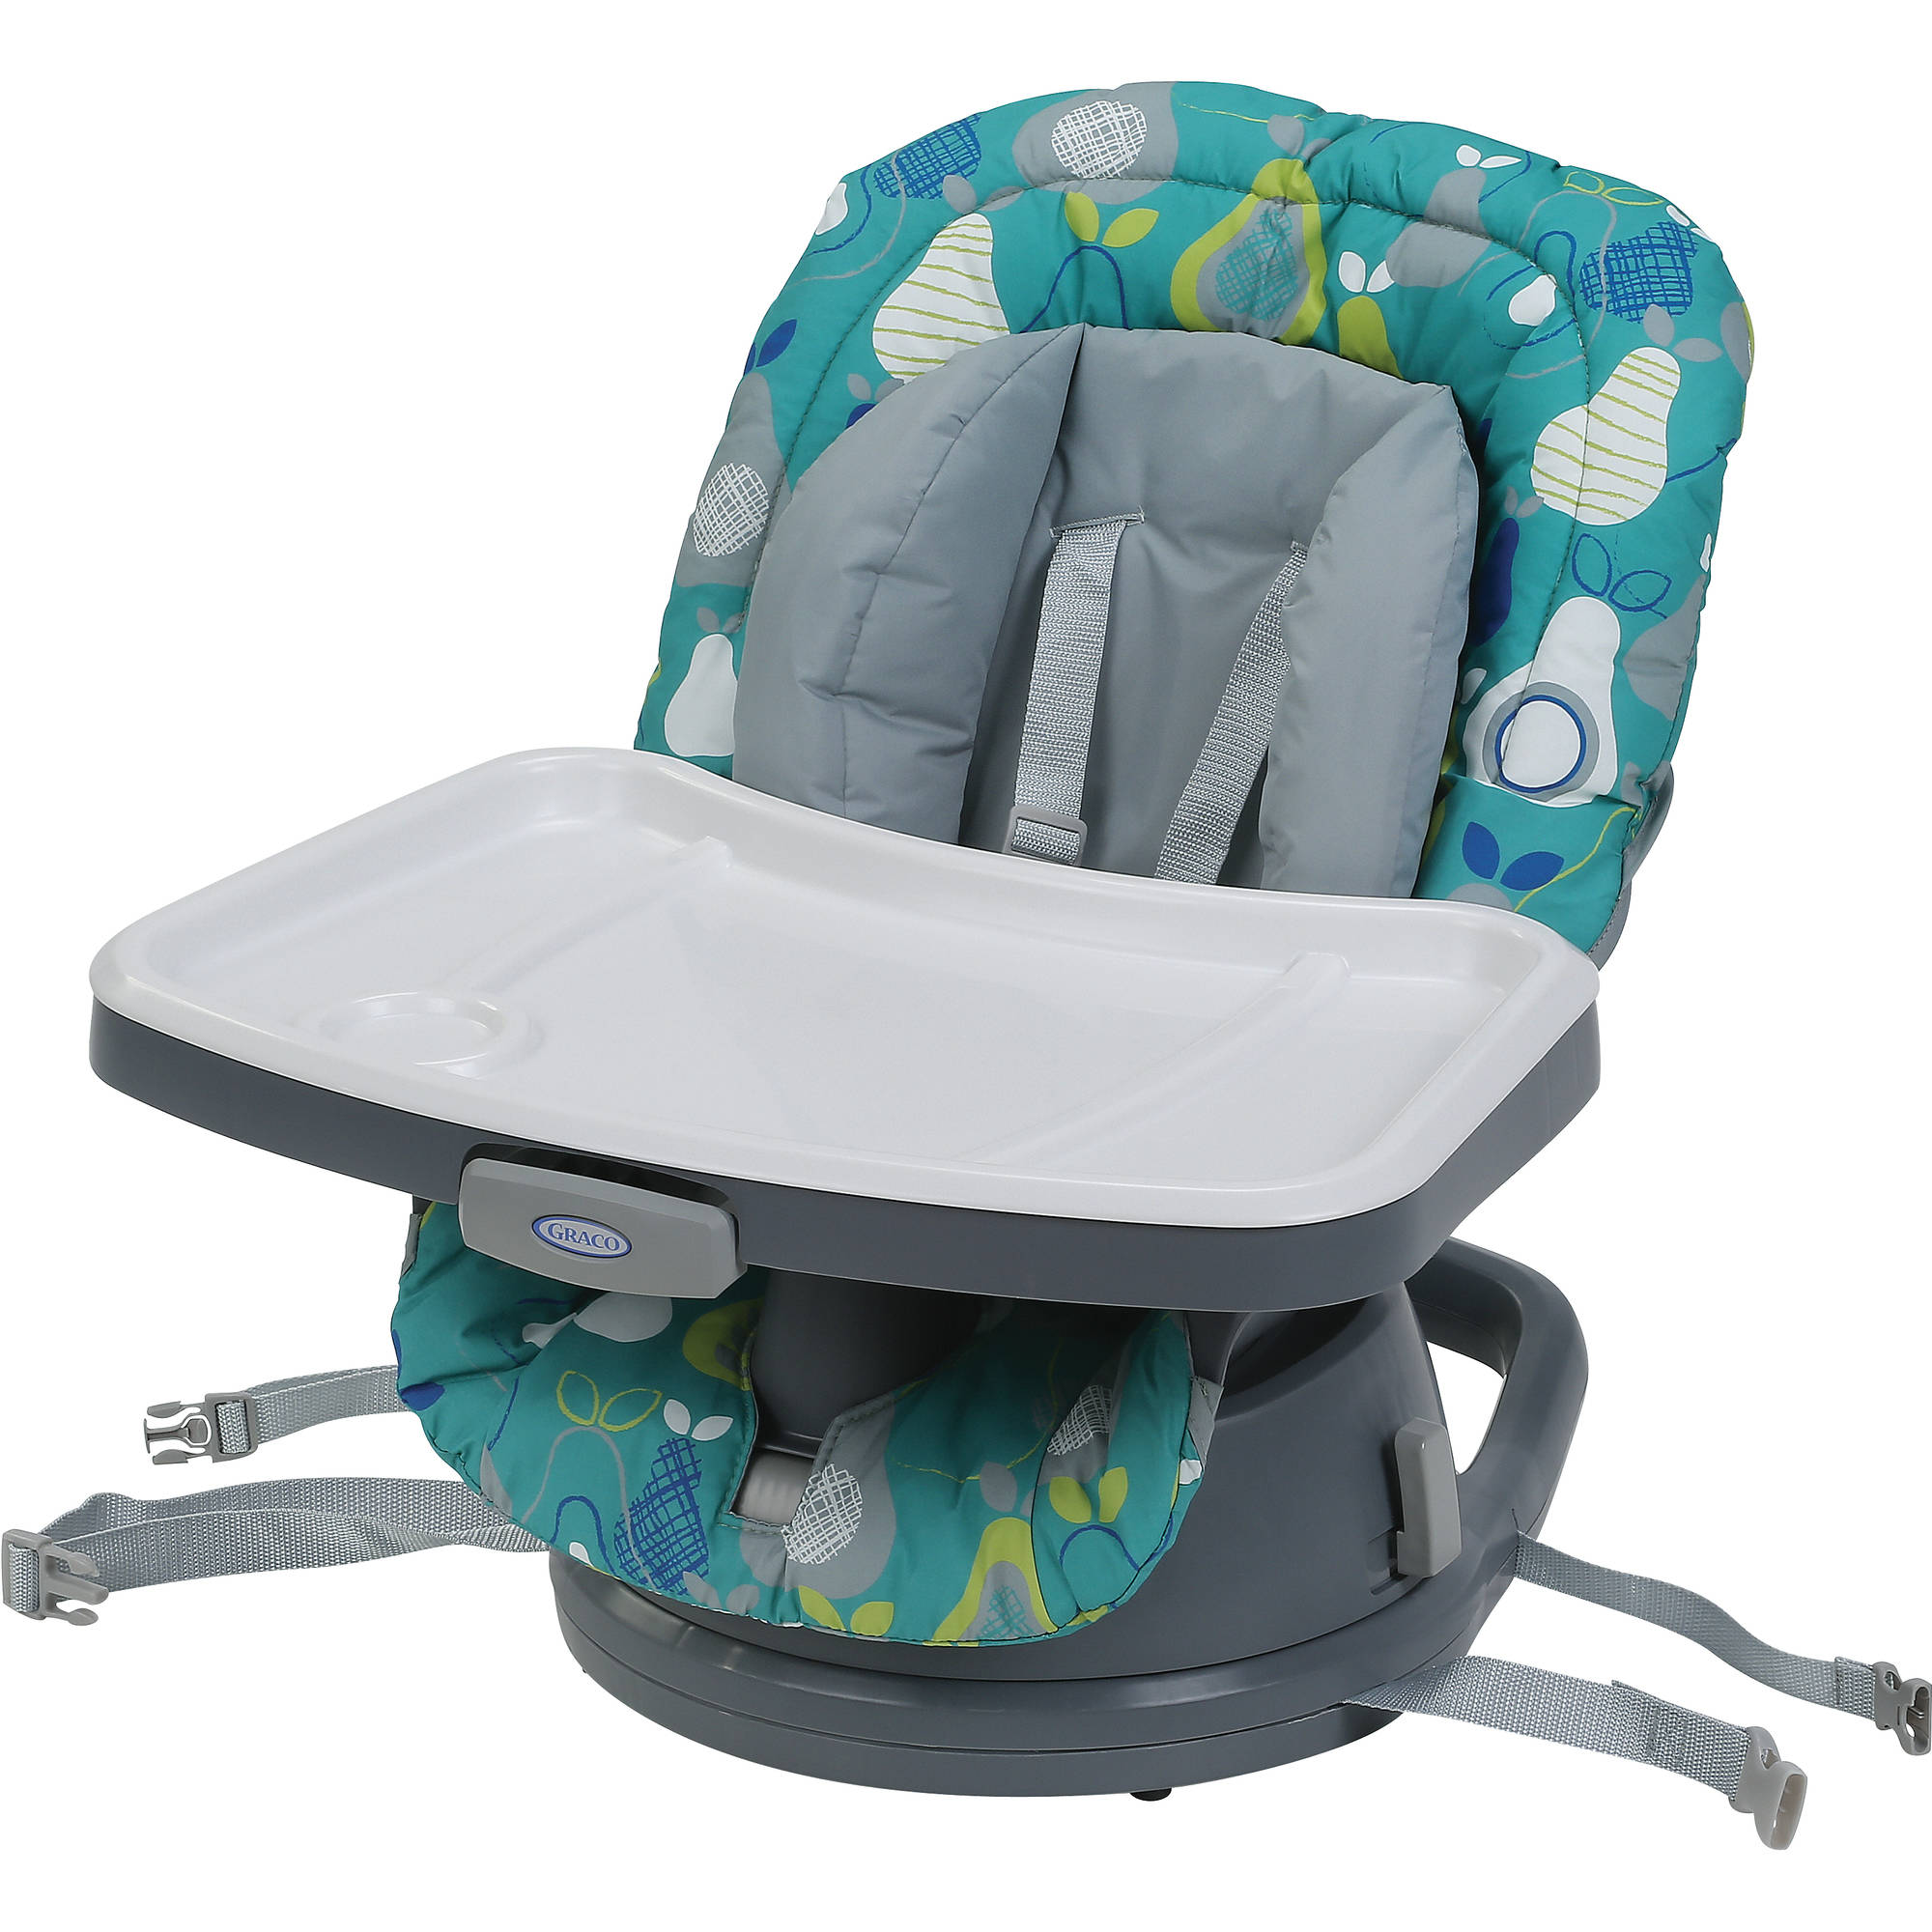 Graco SwiviSeat 3-in-1 High Chair Booster Seat, Tarte